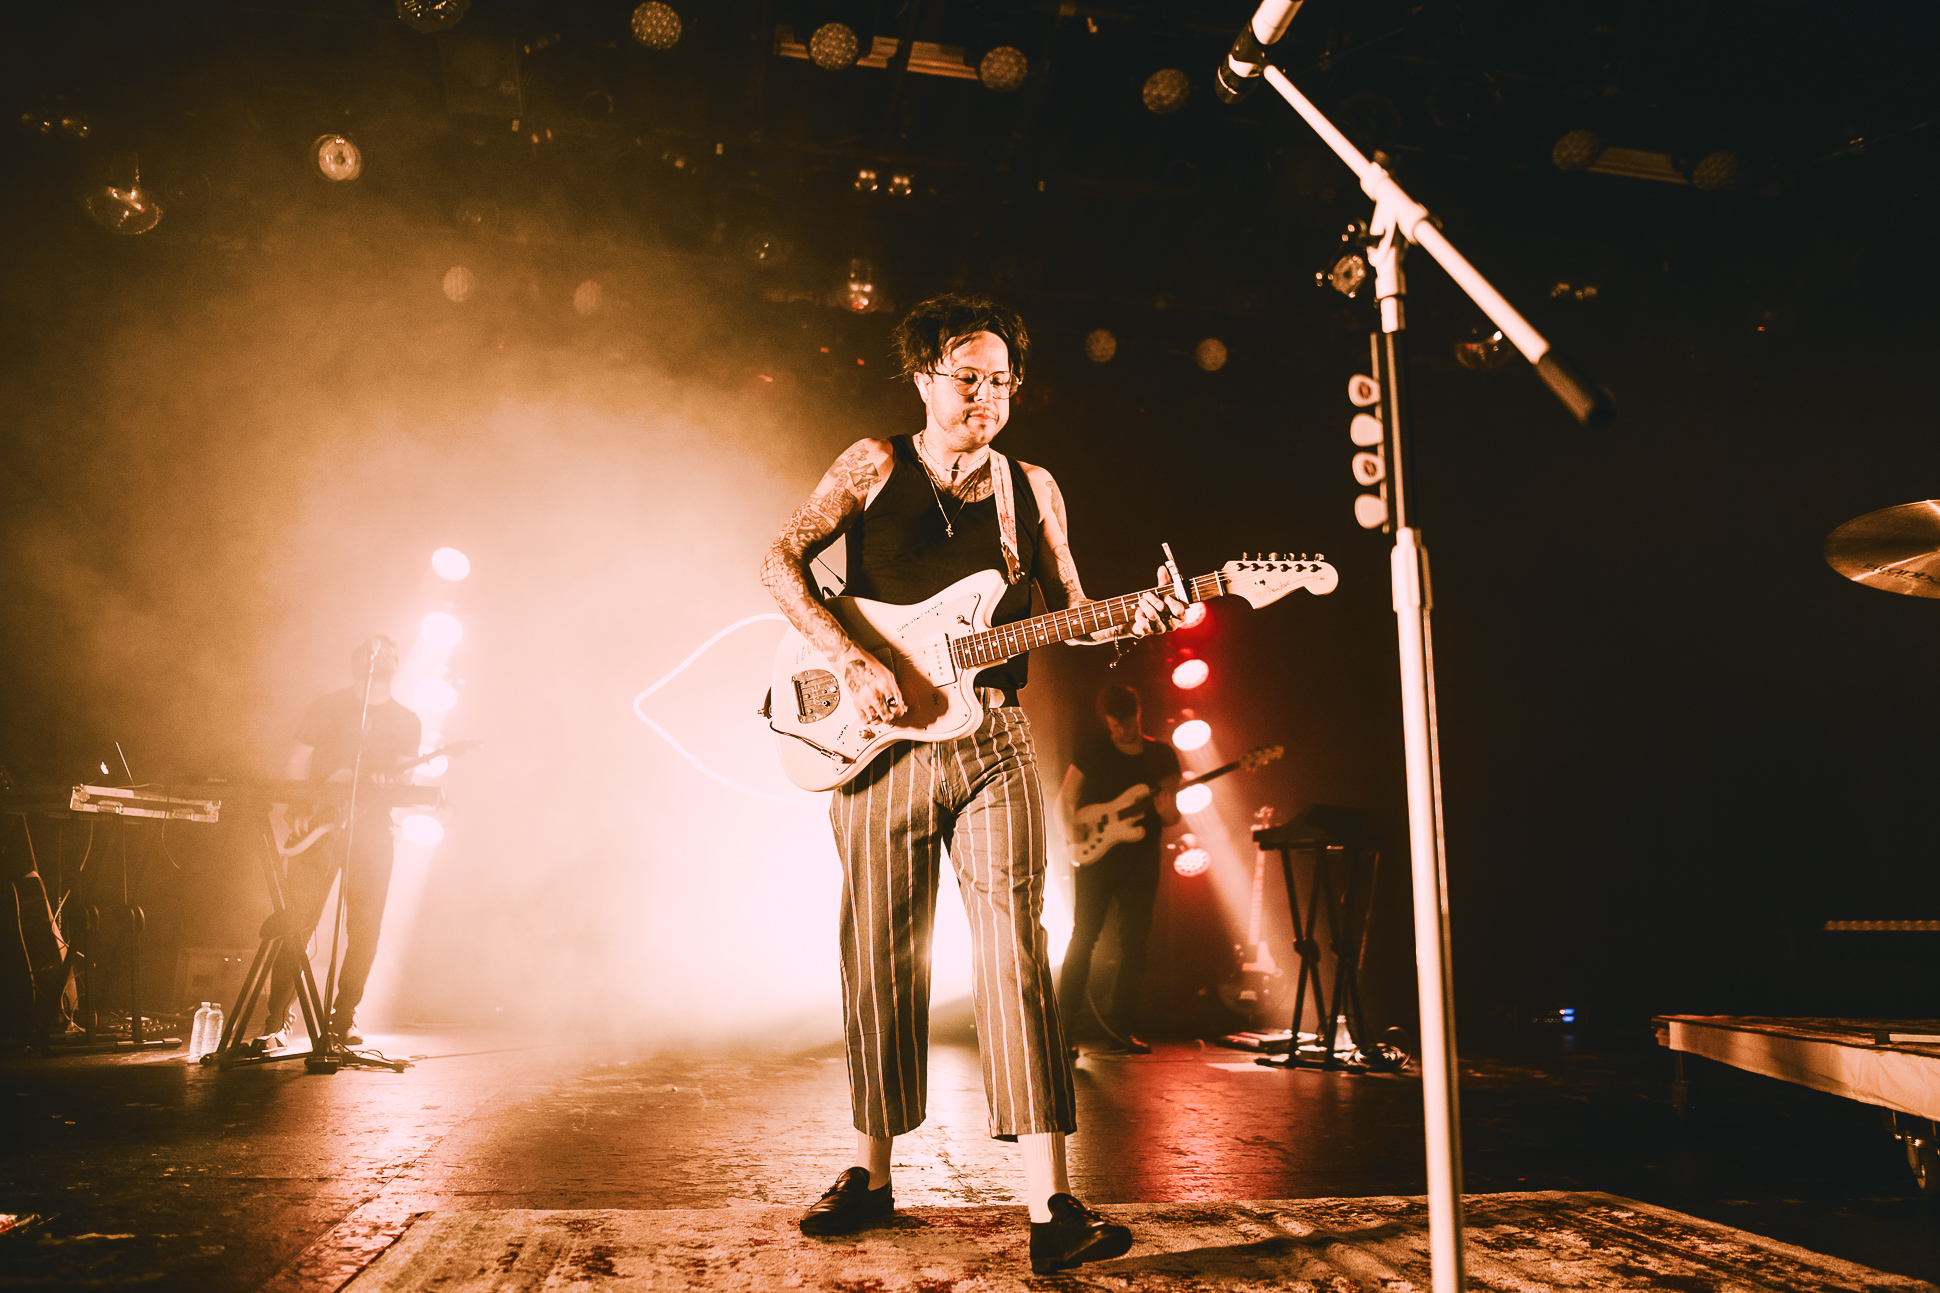 lovelytheband-Commodore-19-04-2019-Vancouver-3913.jpg